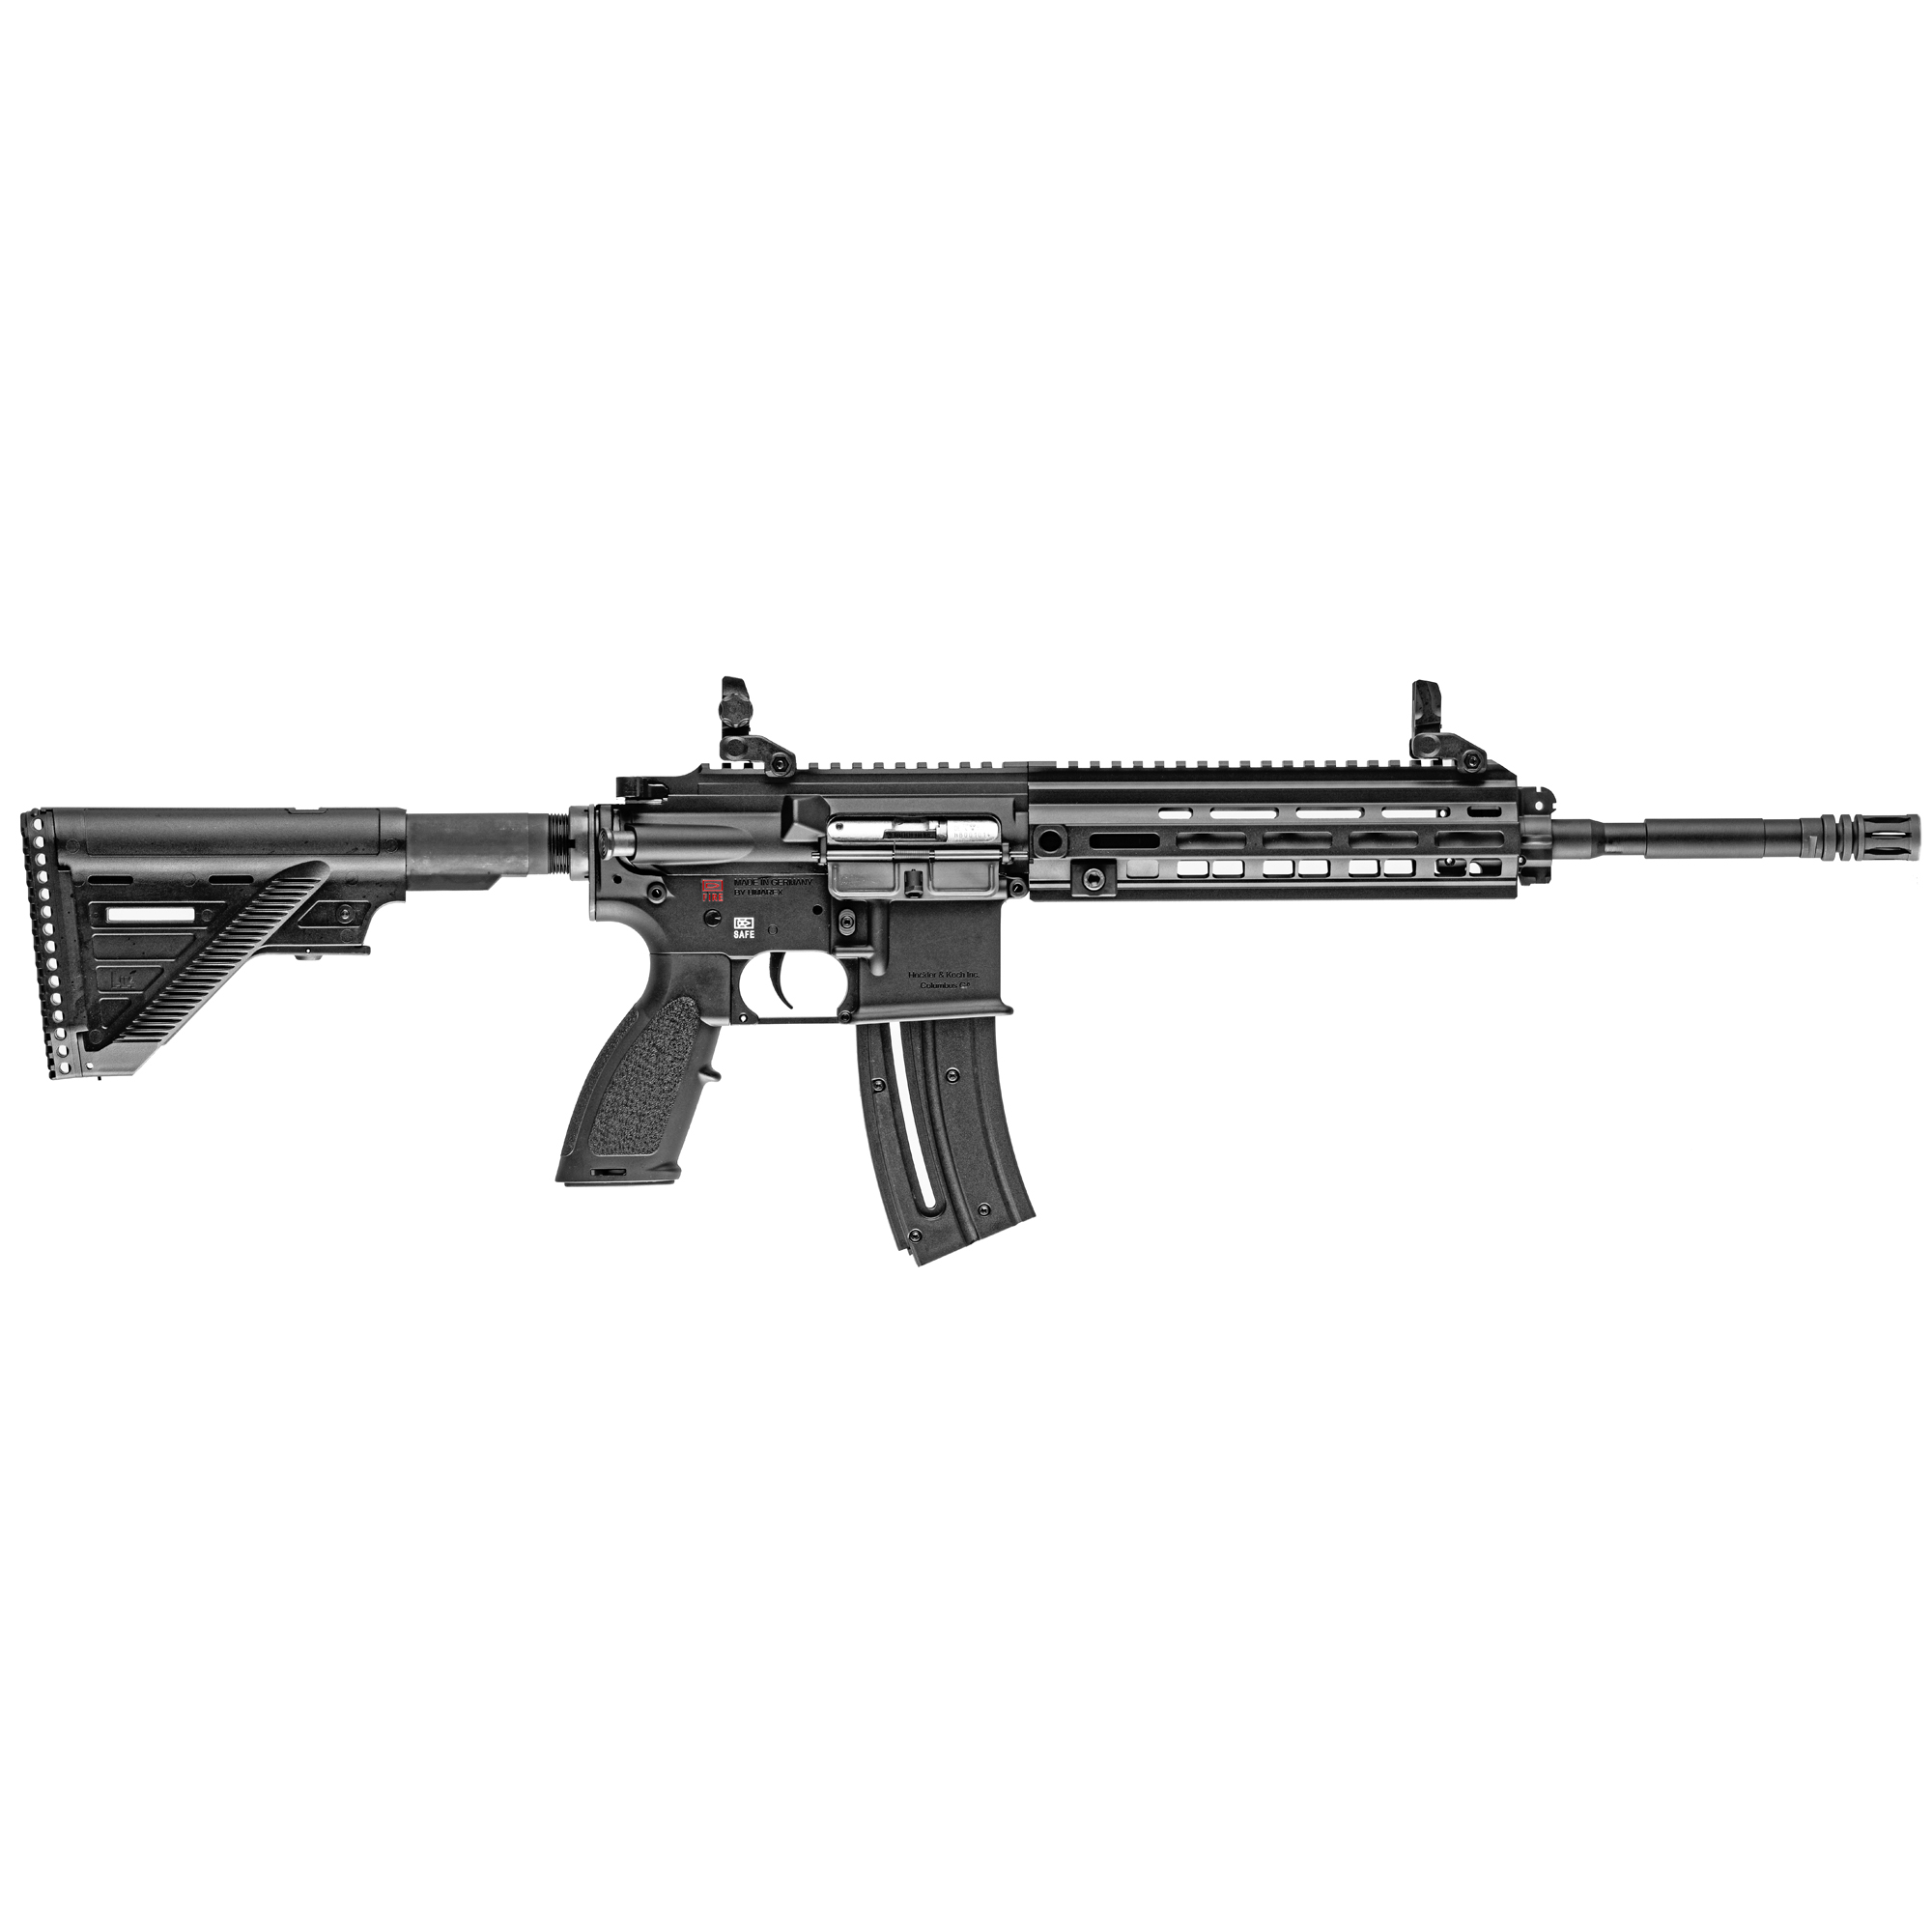 """Get the look and feel of the legendary HK416 used by the world's most elite fighting forces in a semi-automatic .22 LR rifle. HK partnered with Umarex of Germany to bring you the best"""" most realistic HK branded rimfire rifles available. Whether you use it as sub-caliber trainer"""" for hunting or competition"""" make sure you get the only HK416 .22 LR rifle authorized by HK."""